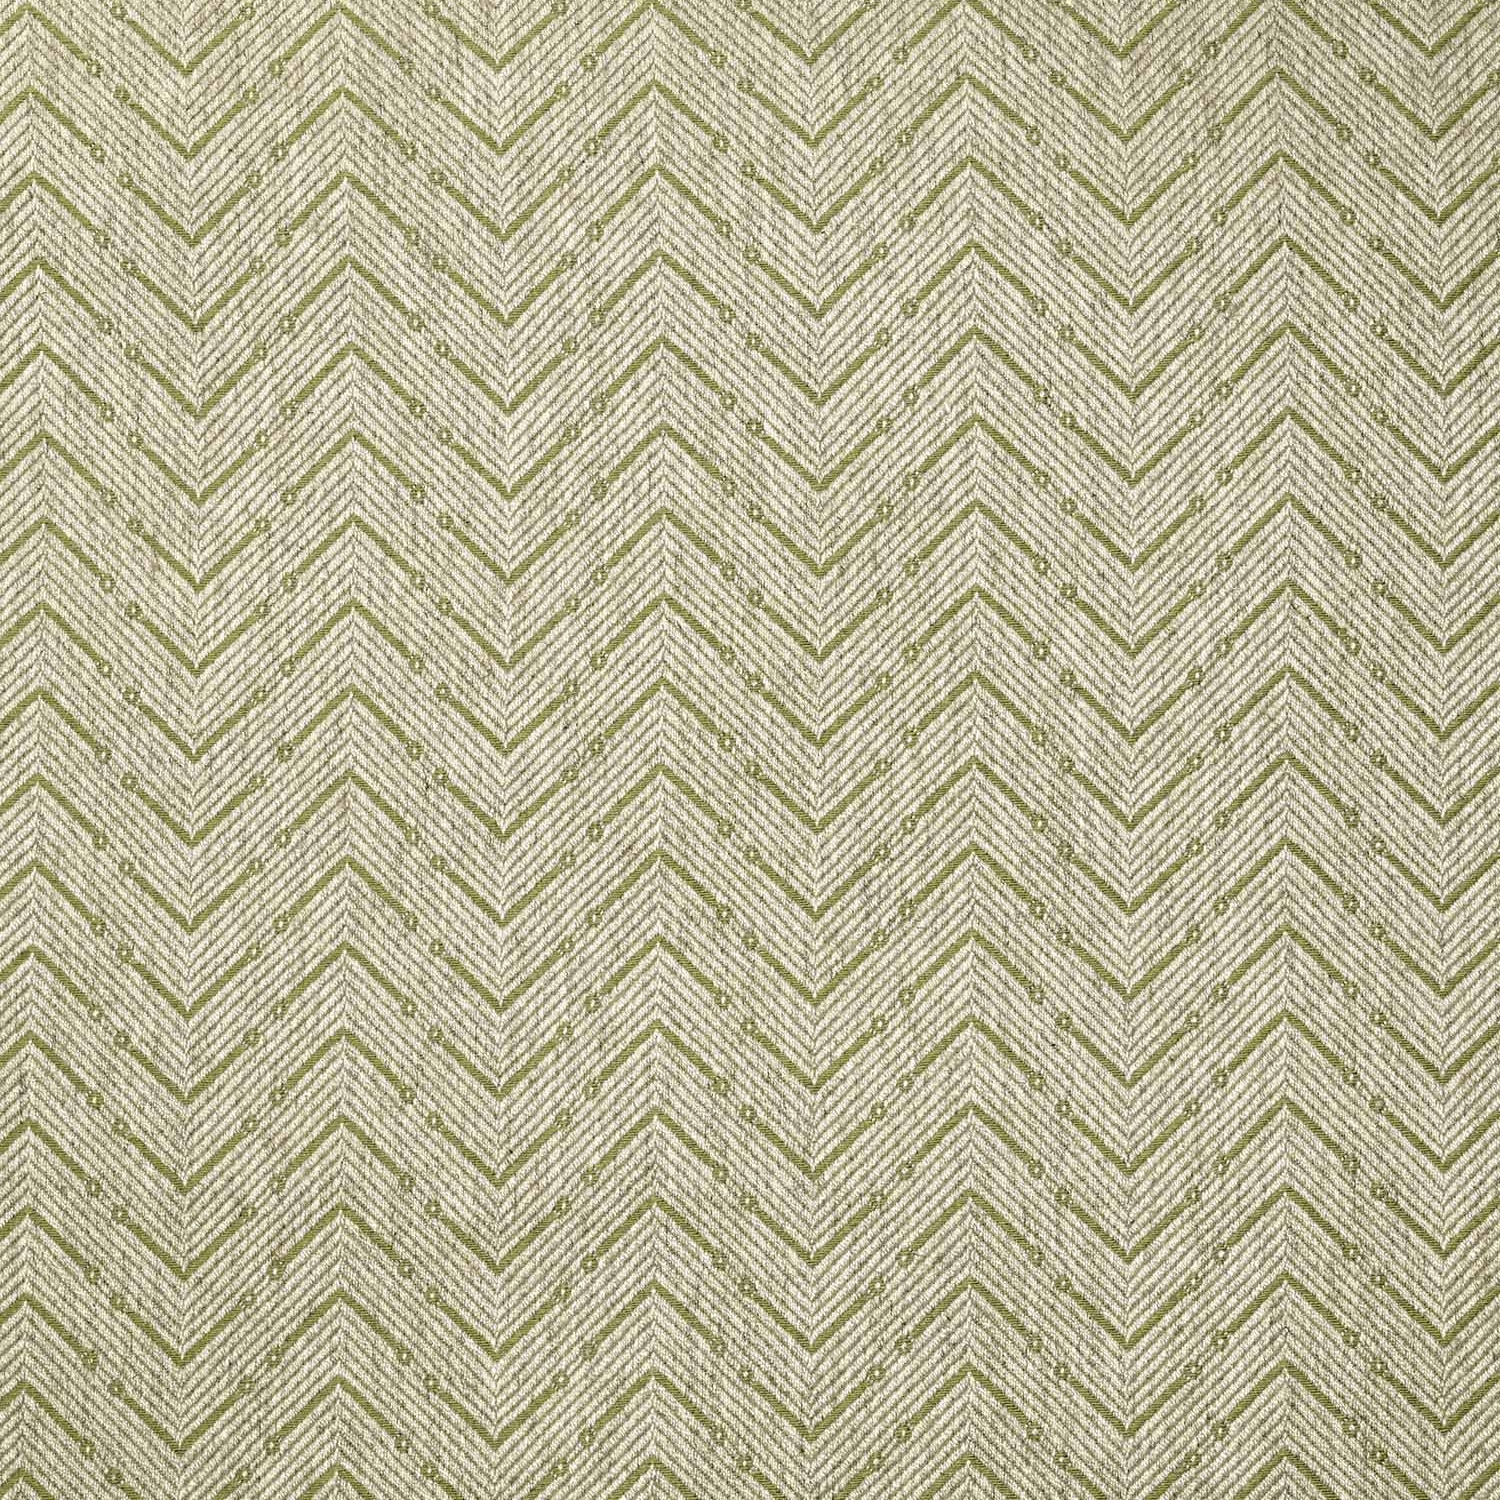 <p><strong>COLBY</strong>green 1210-02<a href=/the-winthorp-collection/colby-green-1210-02>More →</a></p>